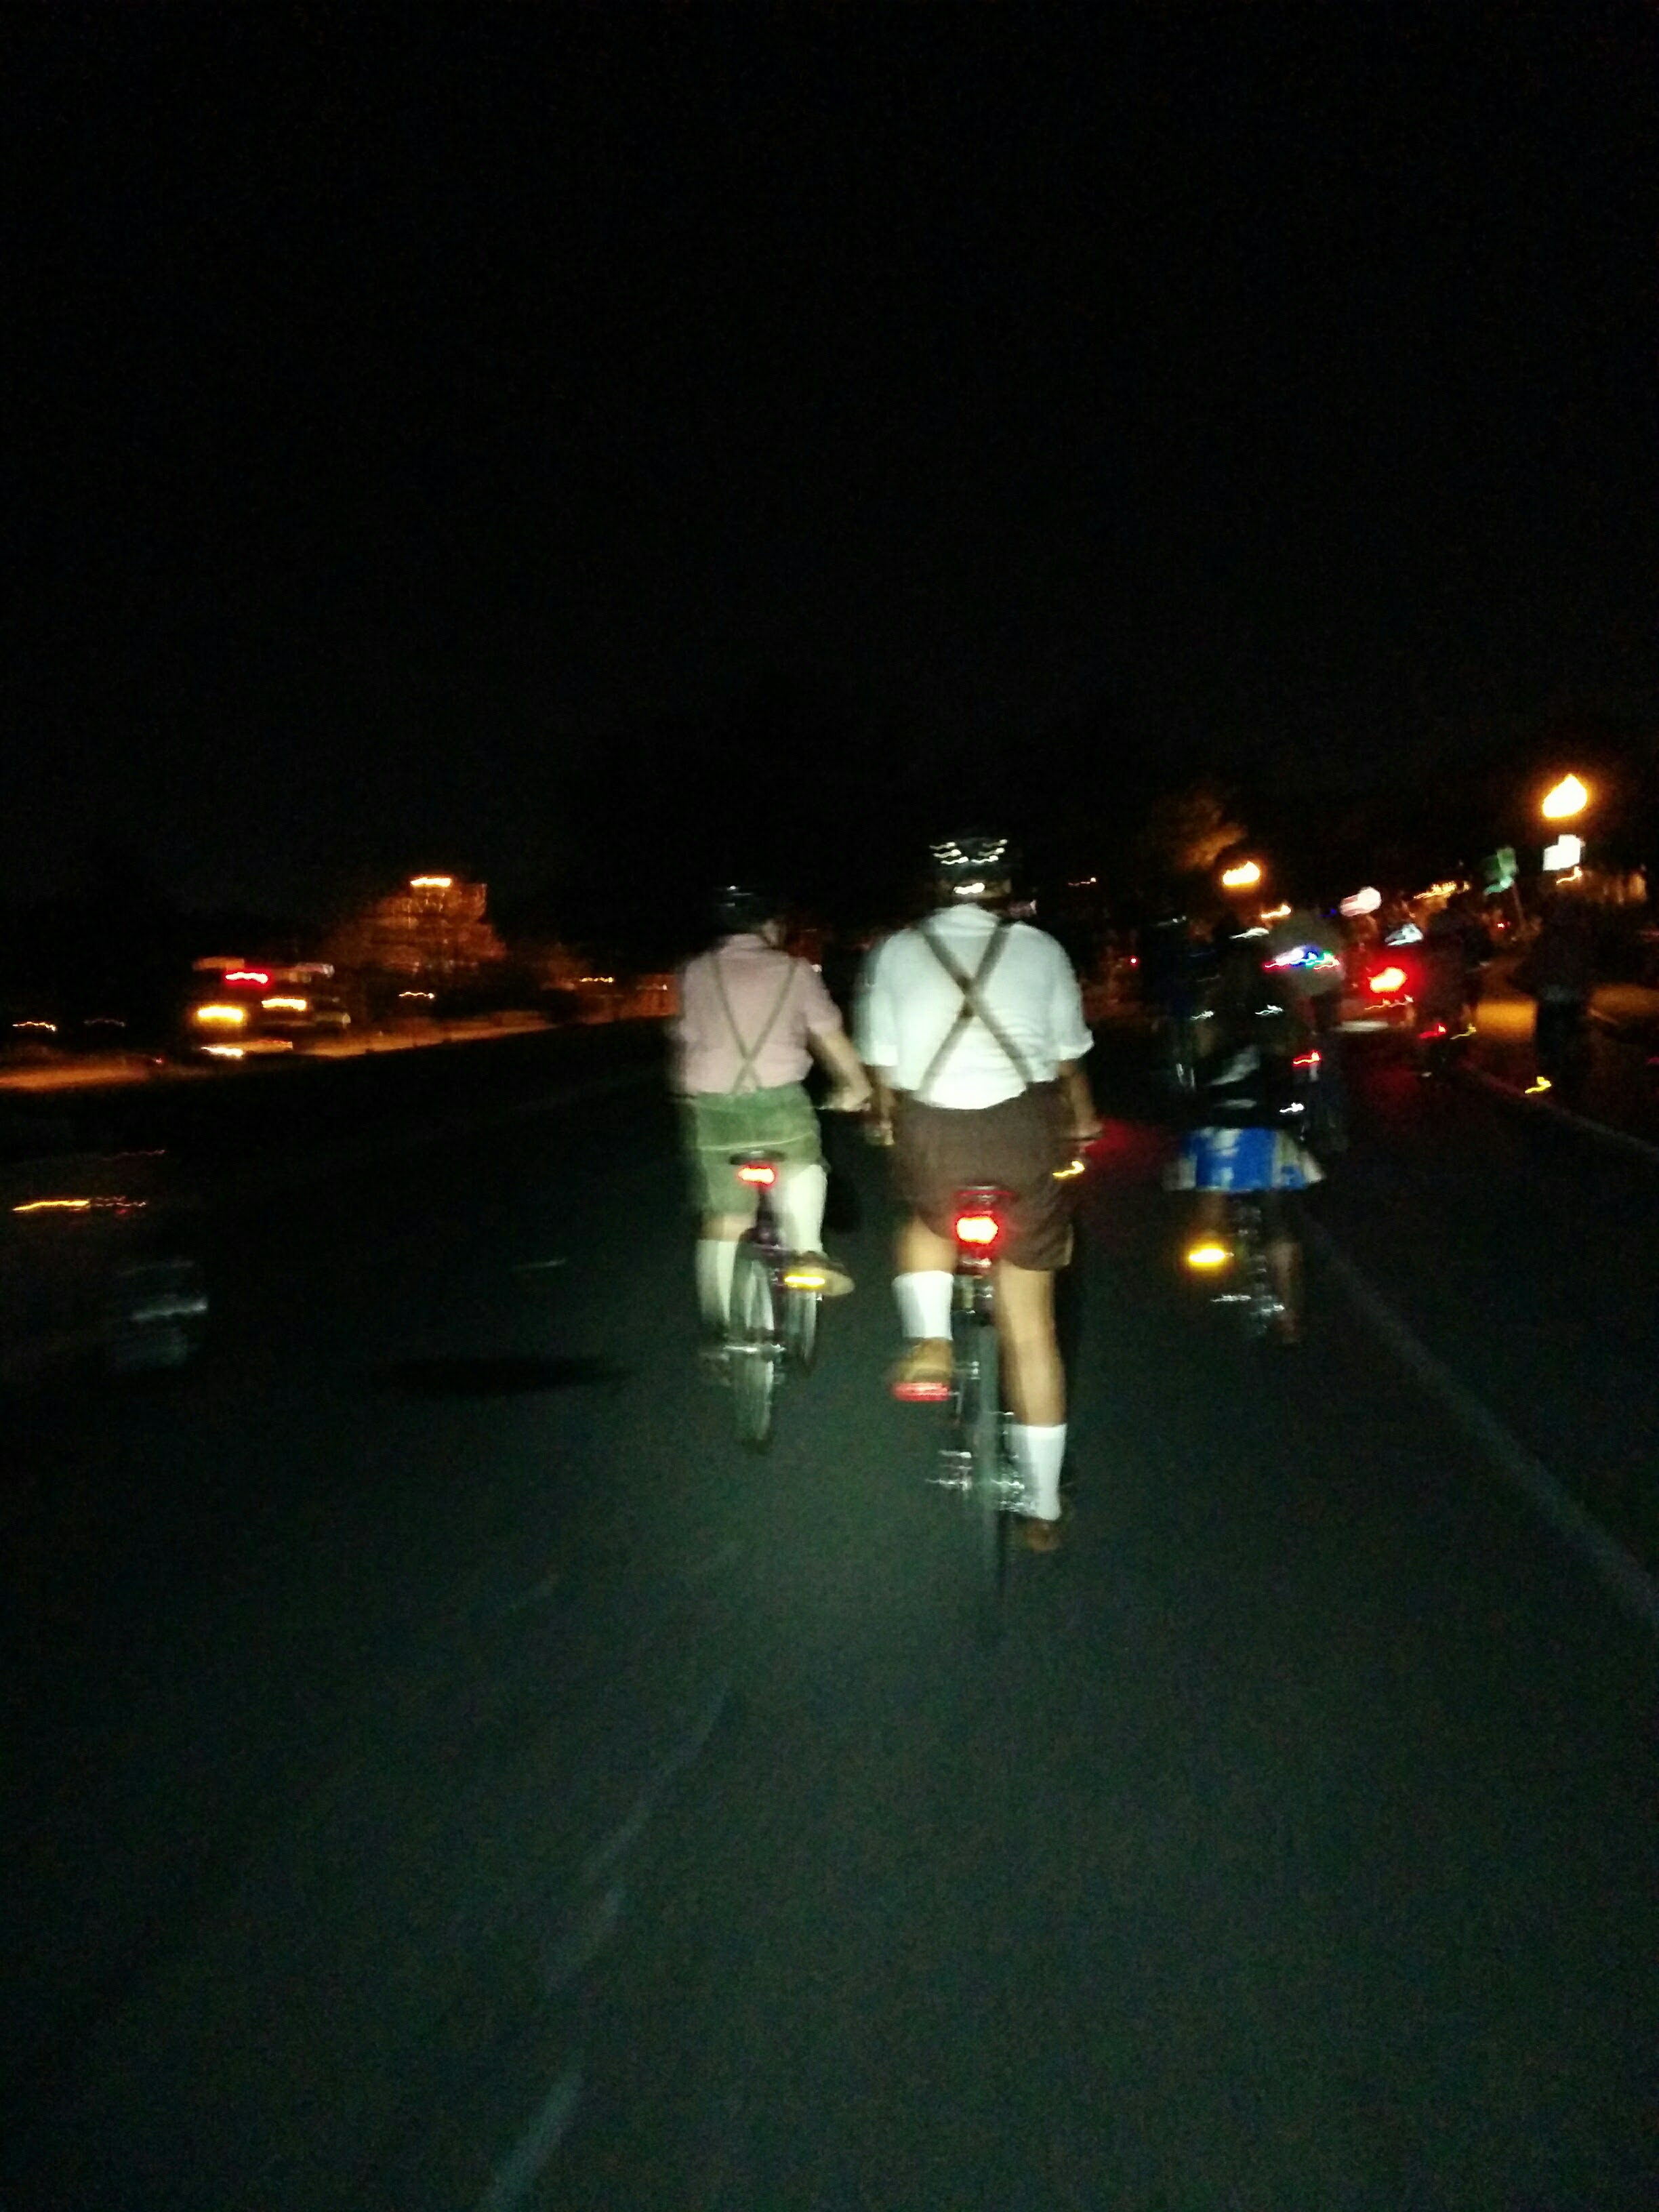 There ain't no party like a Baltimore Bike Party